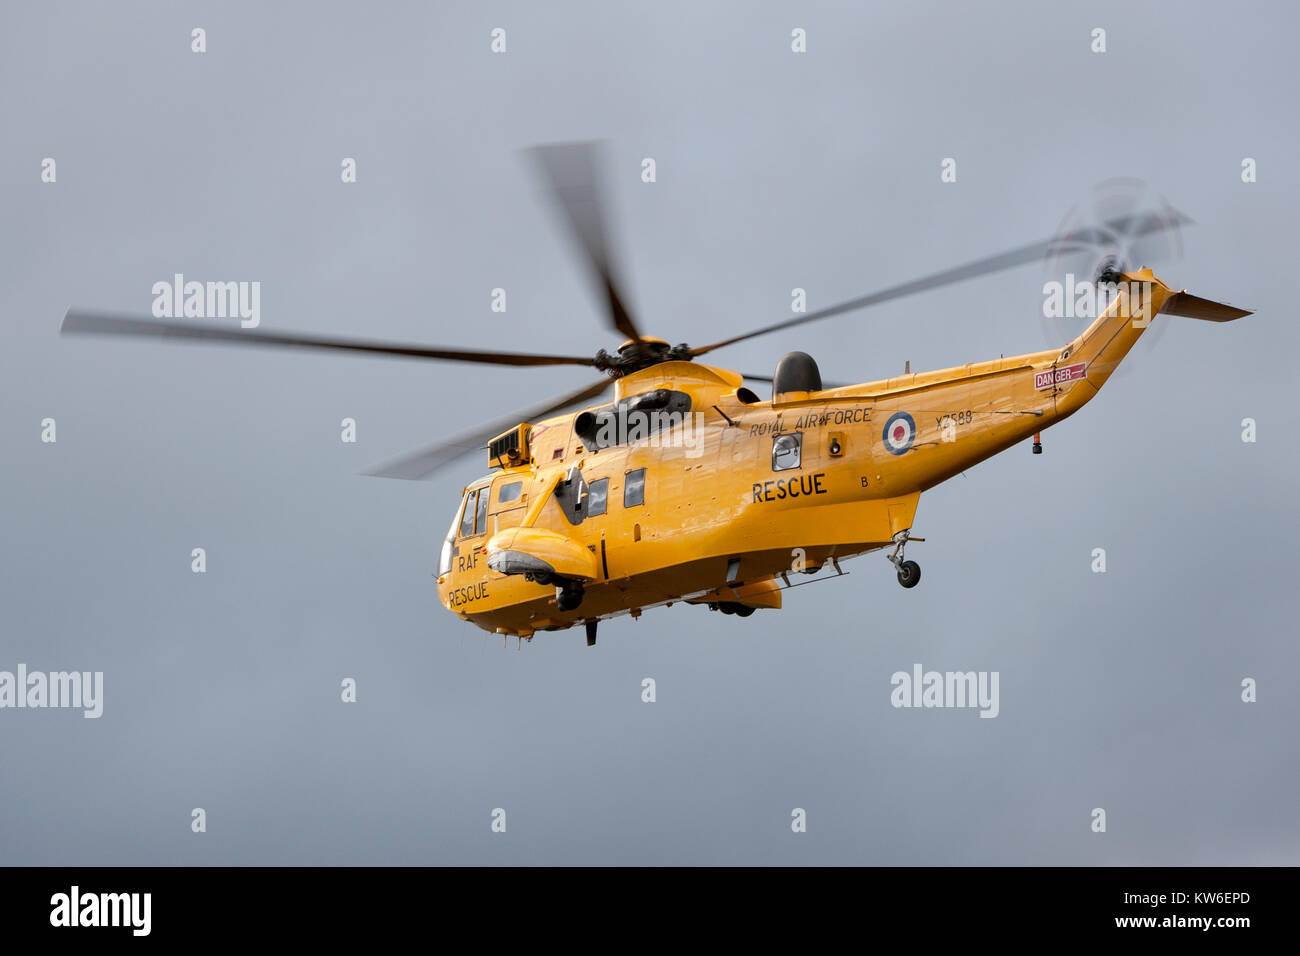 RAF Rescue Helicopter XZ588 in flight. - Stock Image